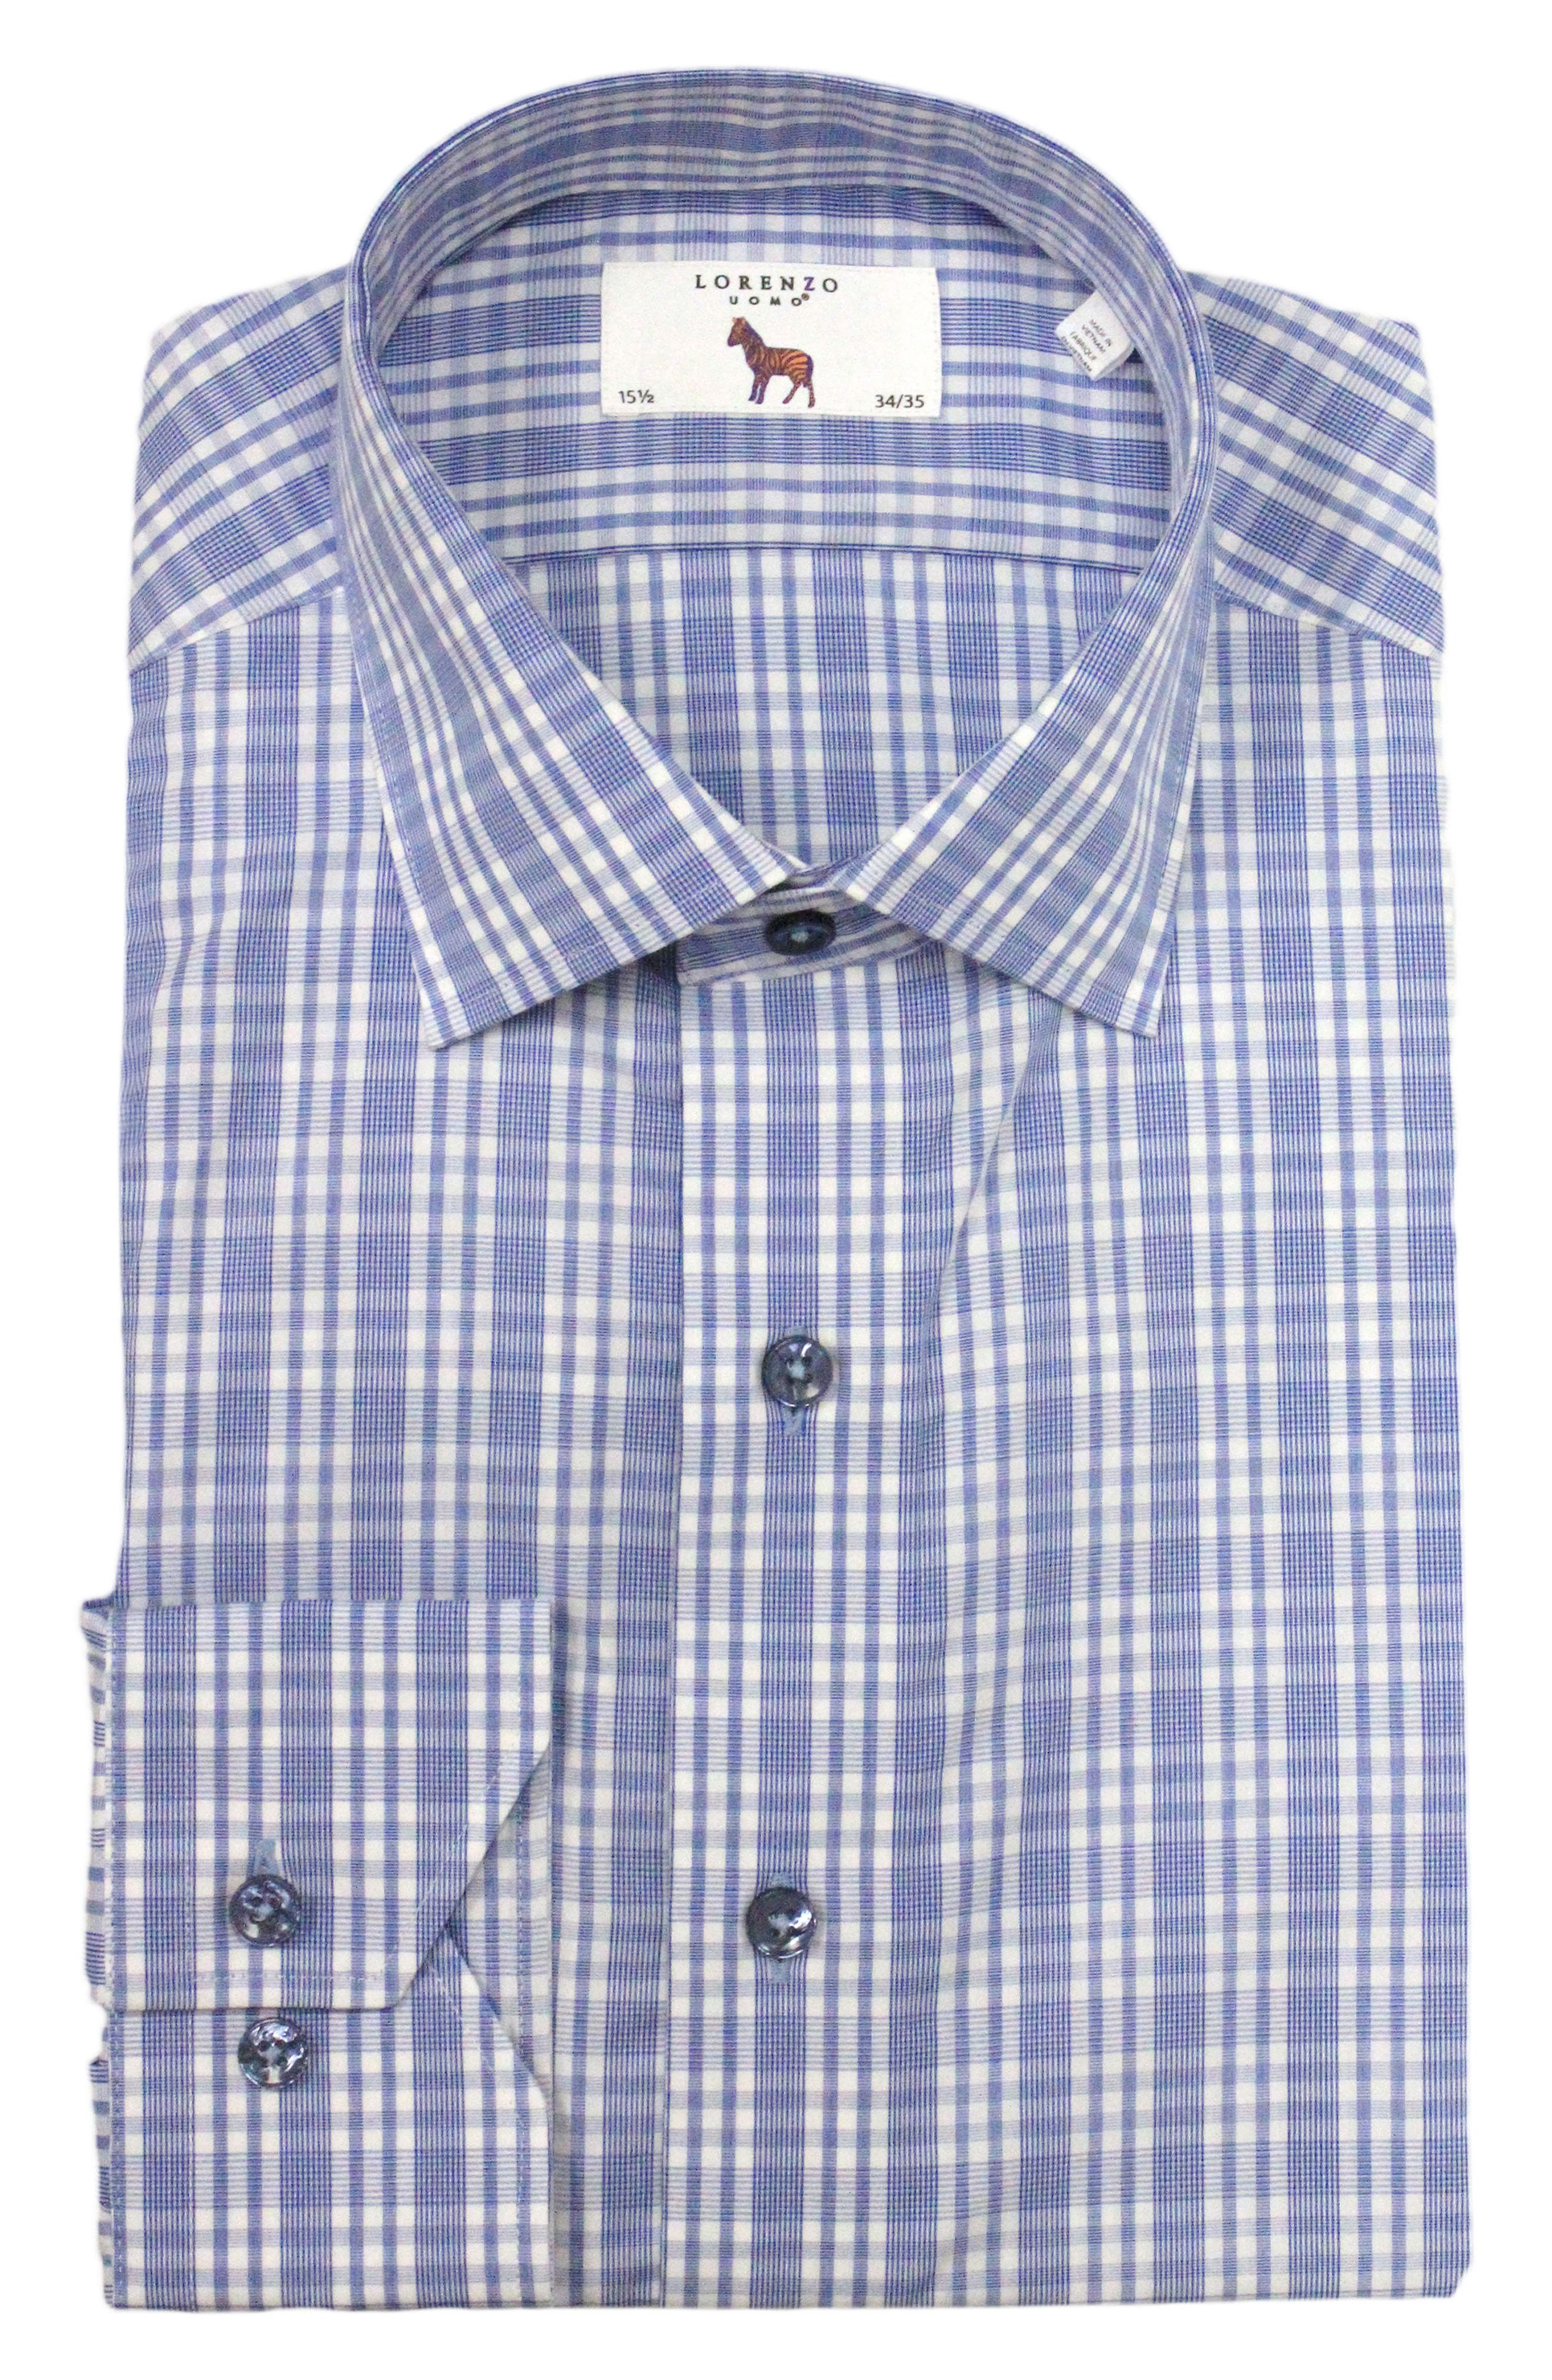 Trim Fit Plaid Dress Shirt,                             Main thumbnail 1, color,                             LIGHT BLUE